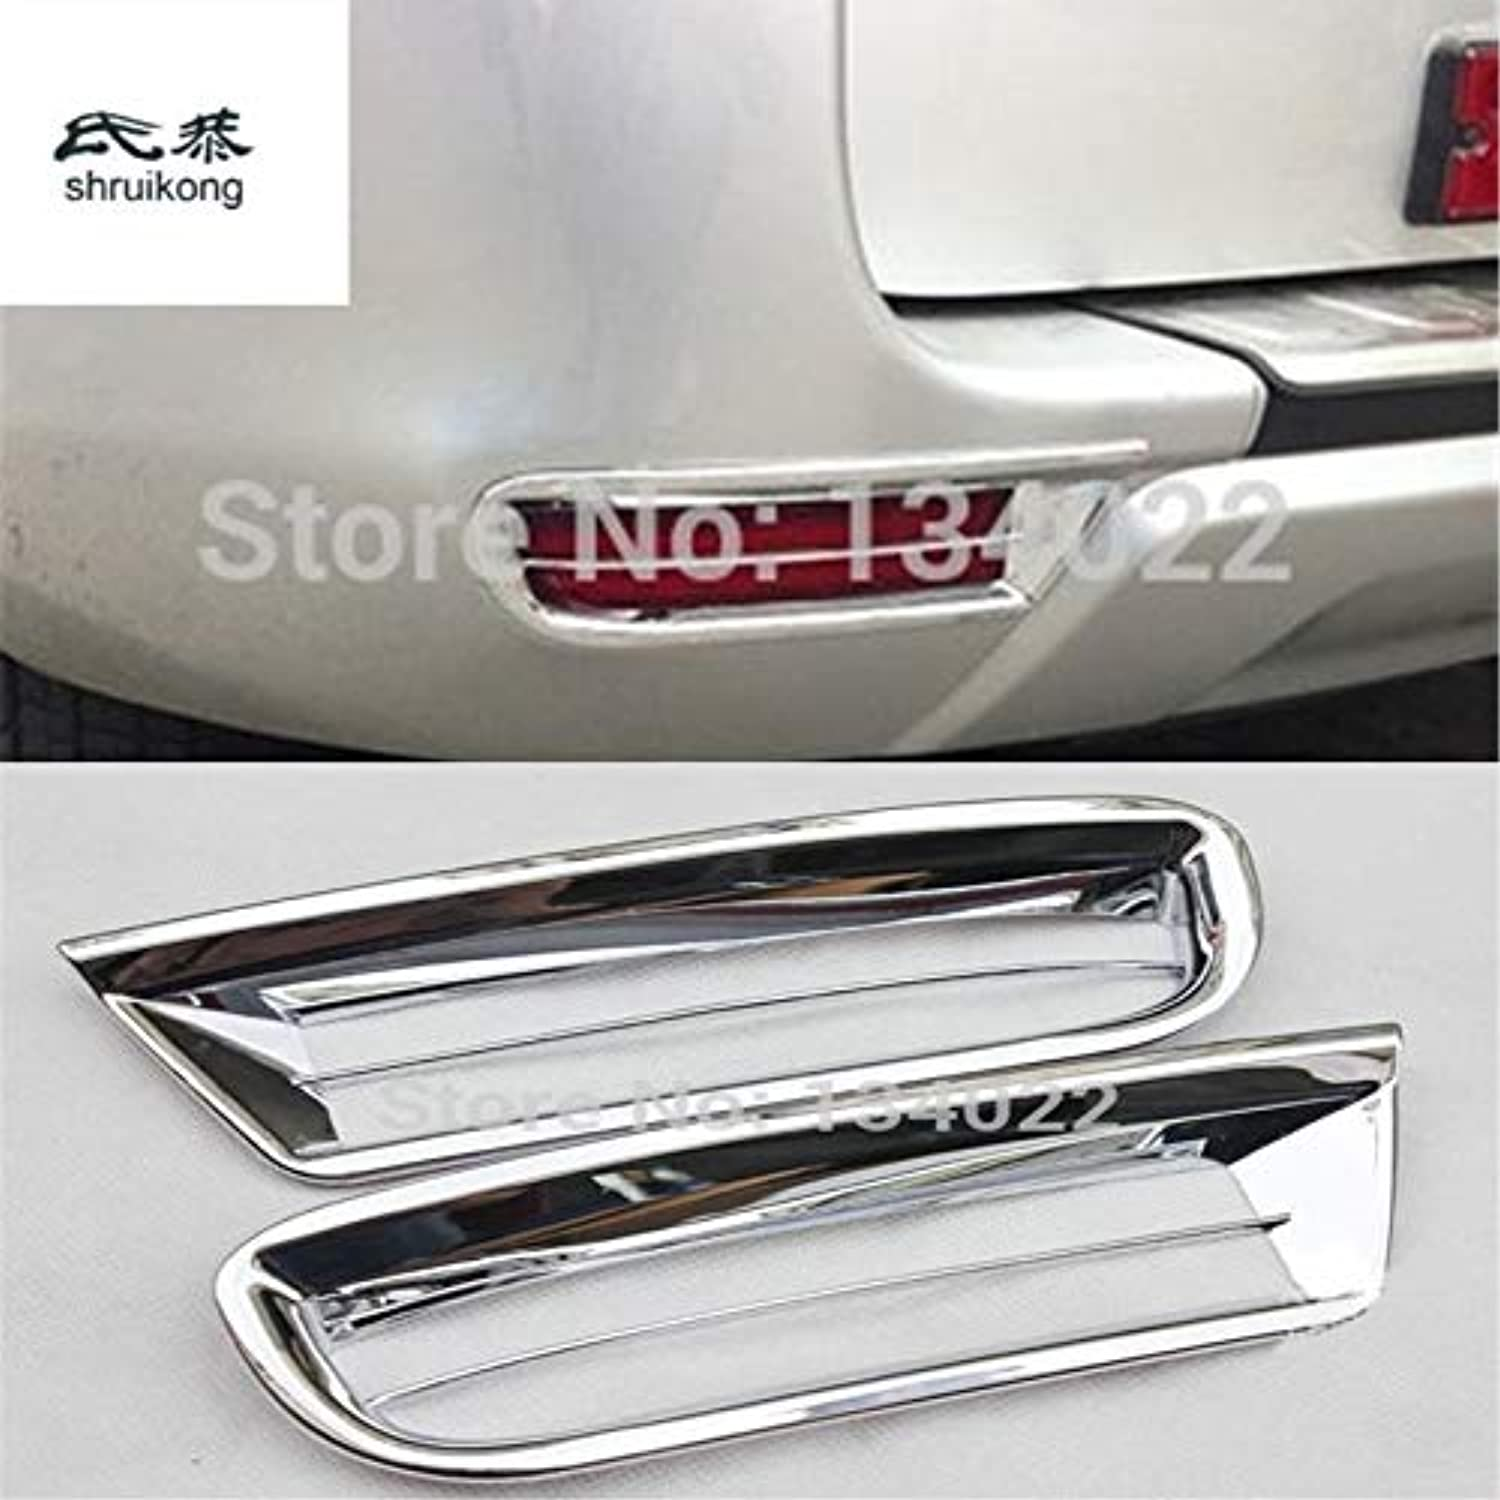 For 20092013 Toyota RAV4 ABS Electroplating Chrome Plated The Back Fog lamp Decoration